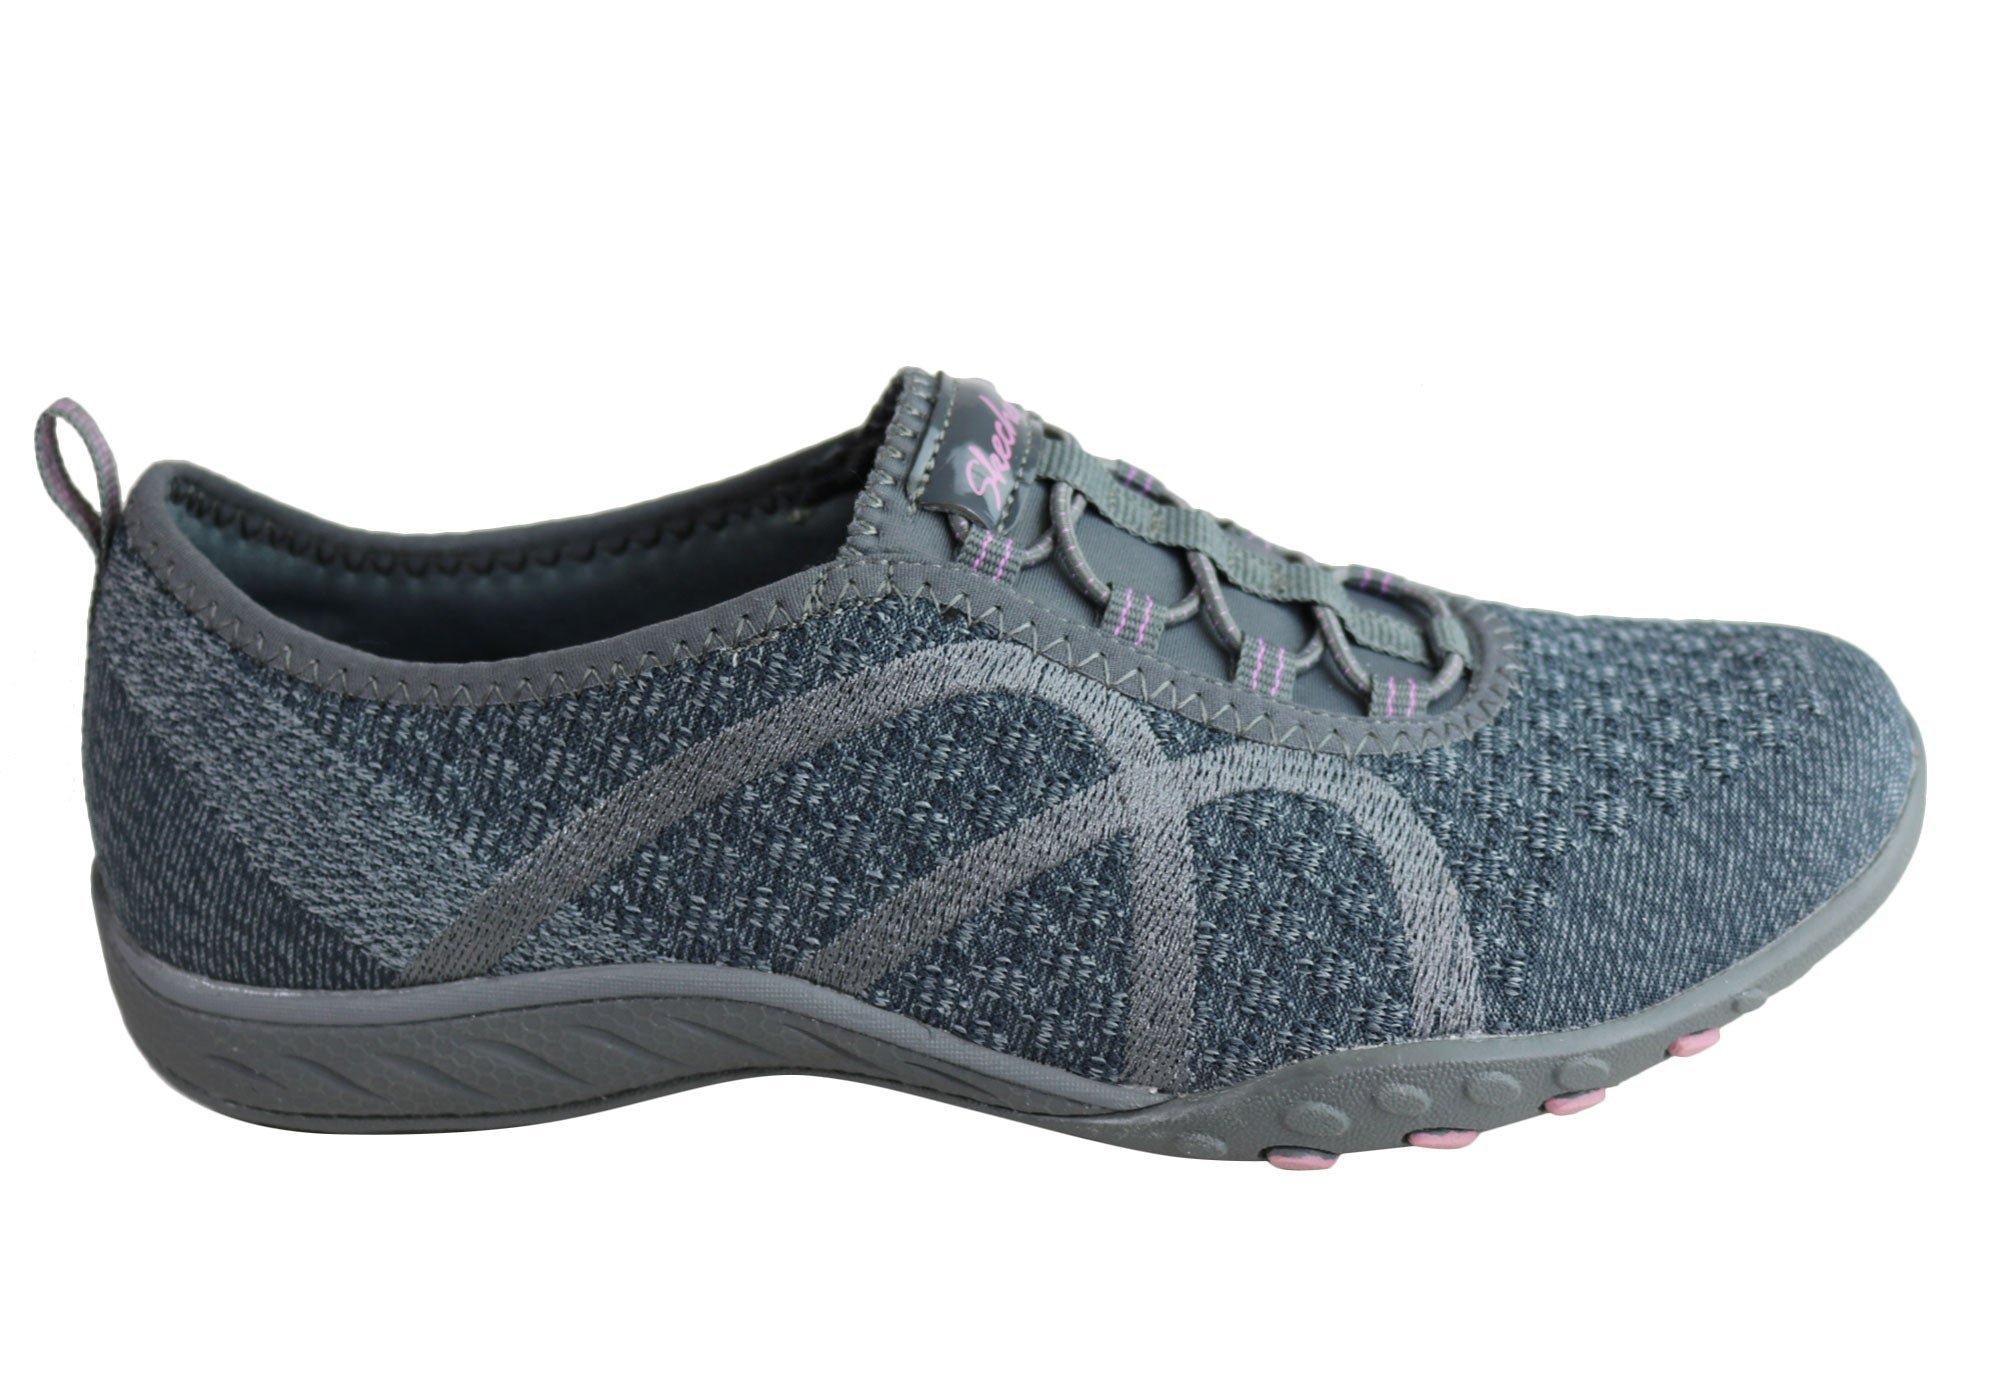 b2b16b9d740 Home Skechers Womens Relaxed Fit Breathe Easy Fortune Knit Casual Shoes.  Charcoal ...